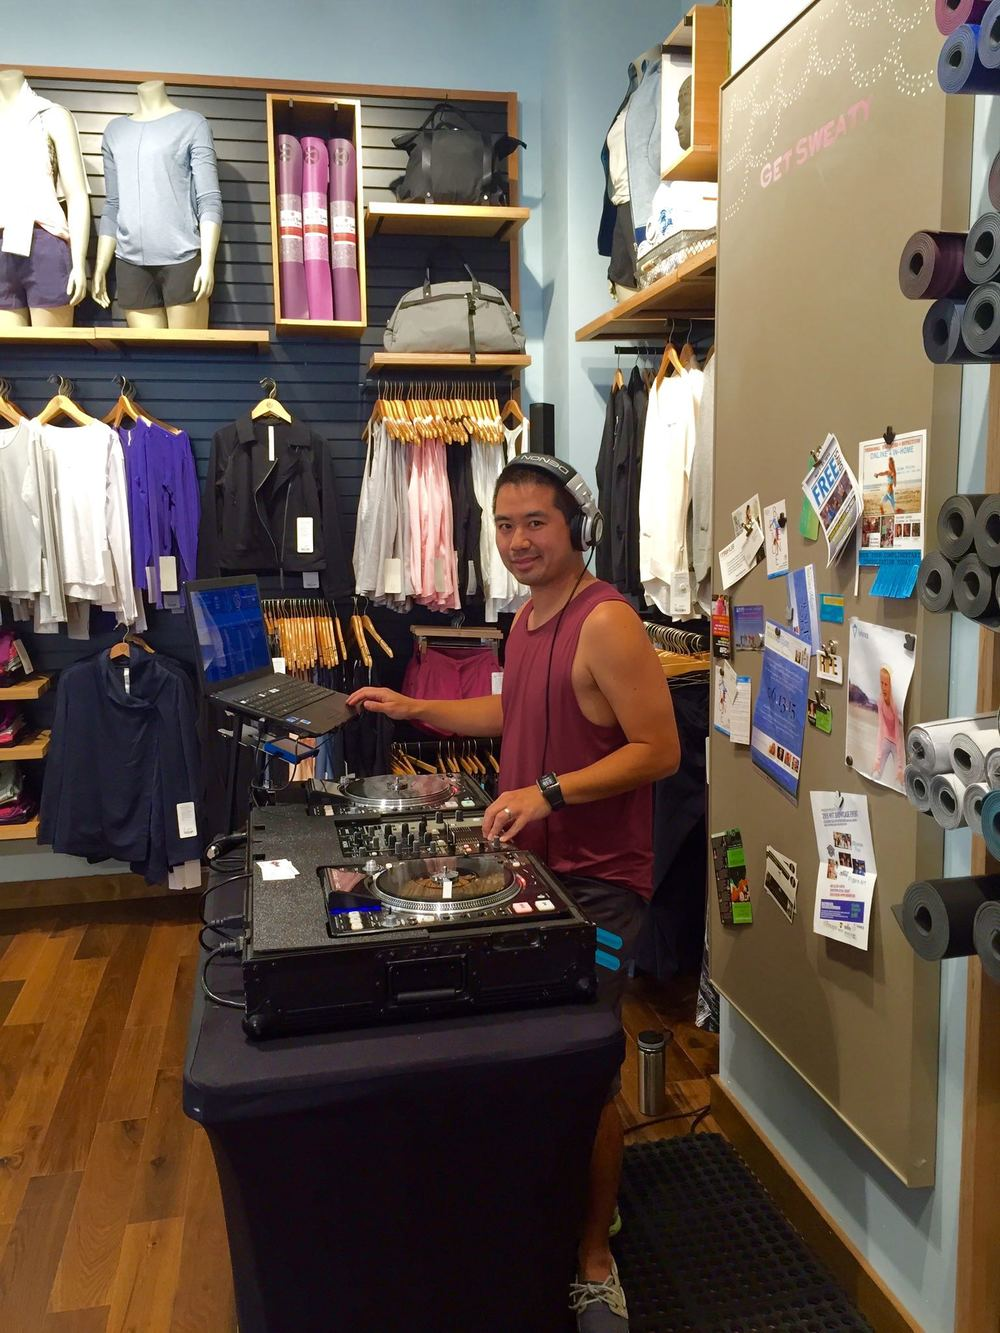 On occassion I have the privilege of DJing for Lululemon customers at Fashion Valley Mall and downtown La Jolla.